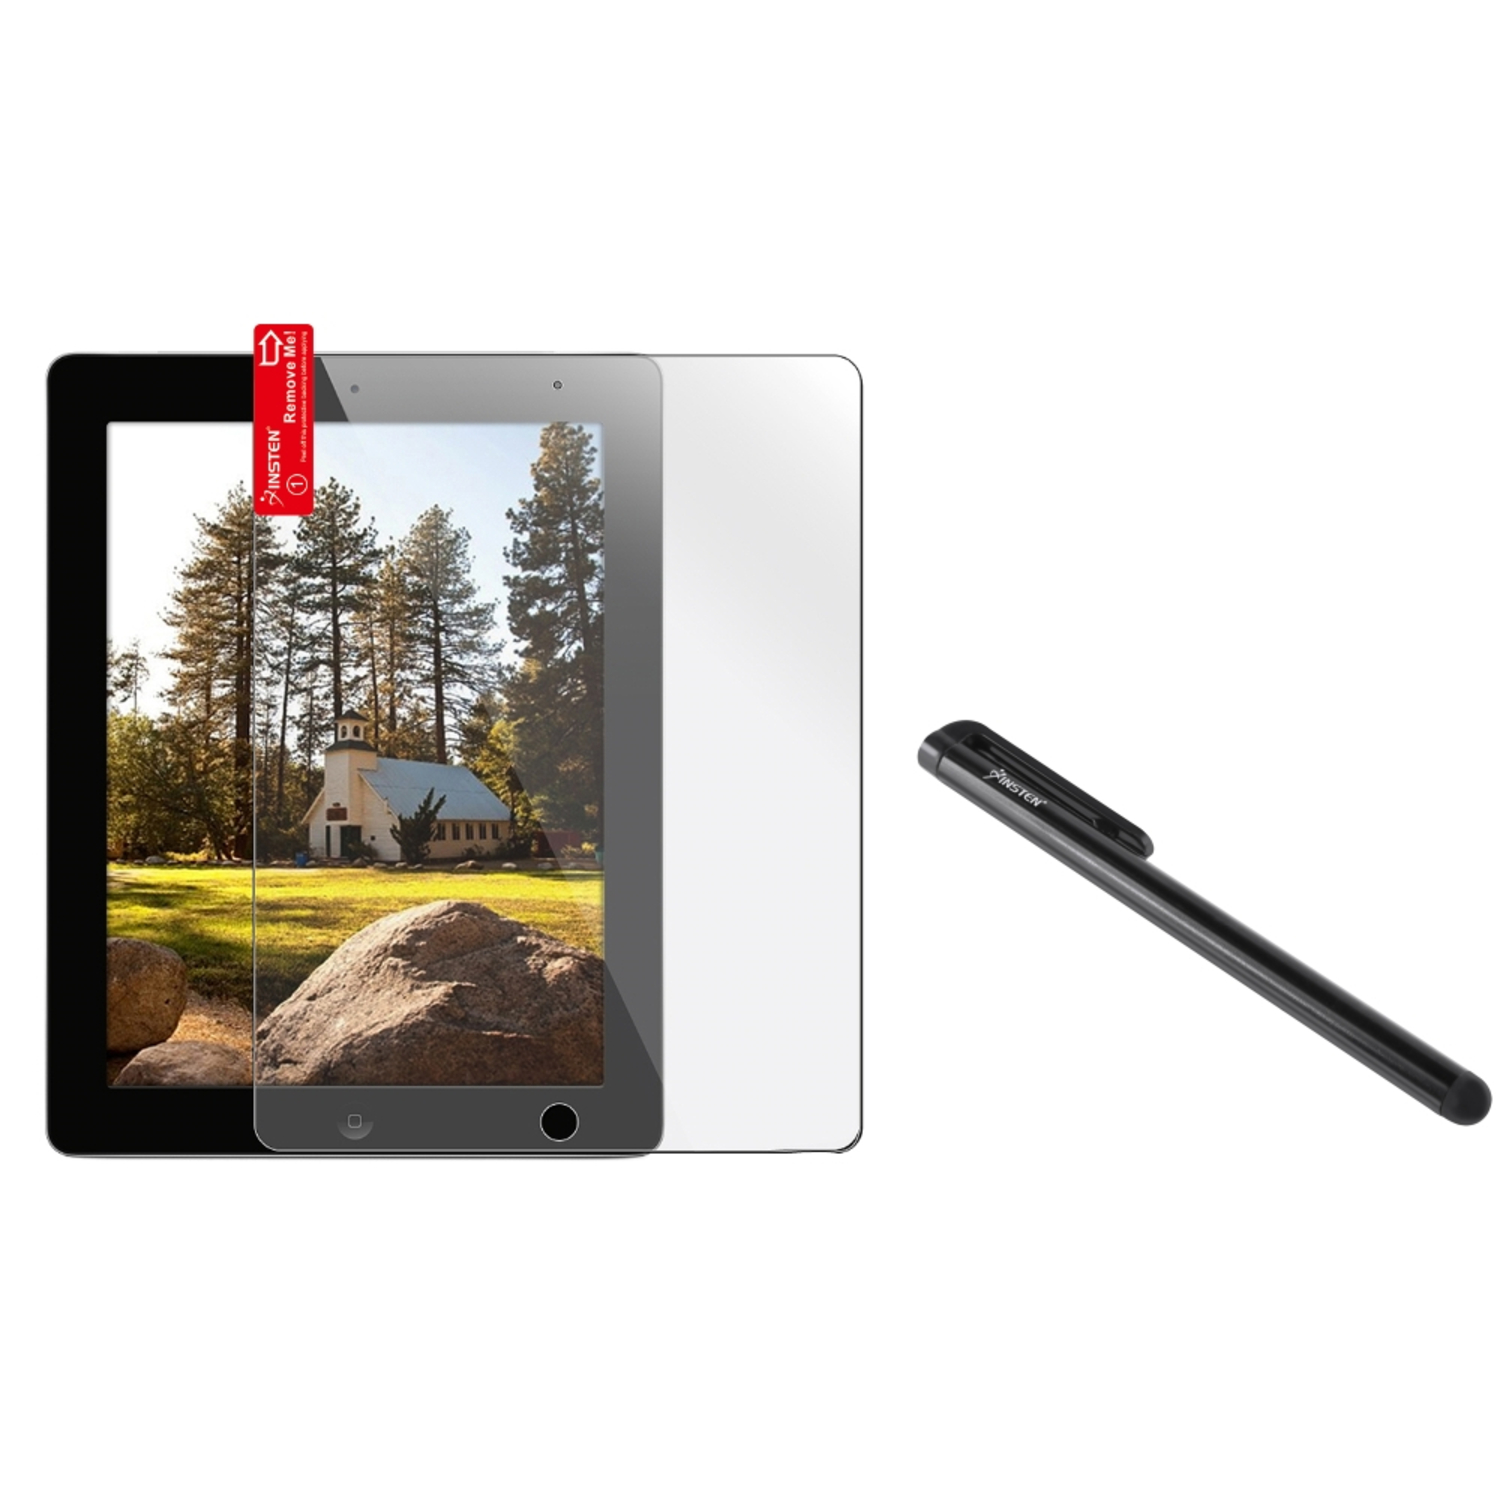 Insten 2X Clear LCD Screen Guard Cover for iPad 4 4th 32 Retina Display+Stylus (3-in-1 Accessory Bundle)